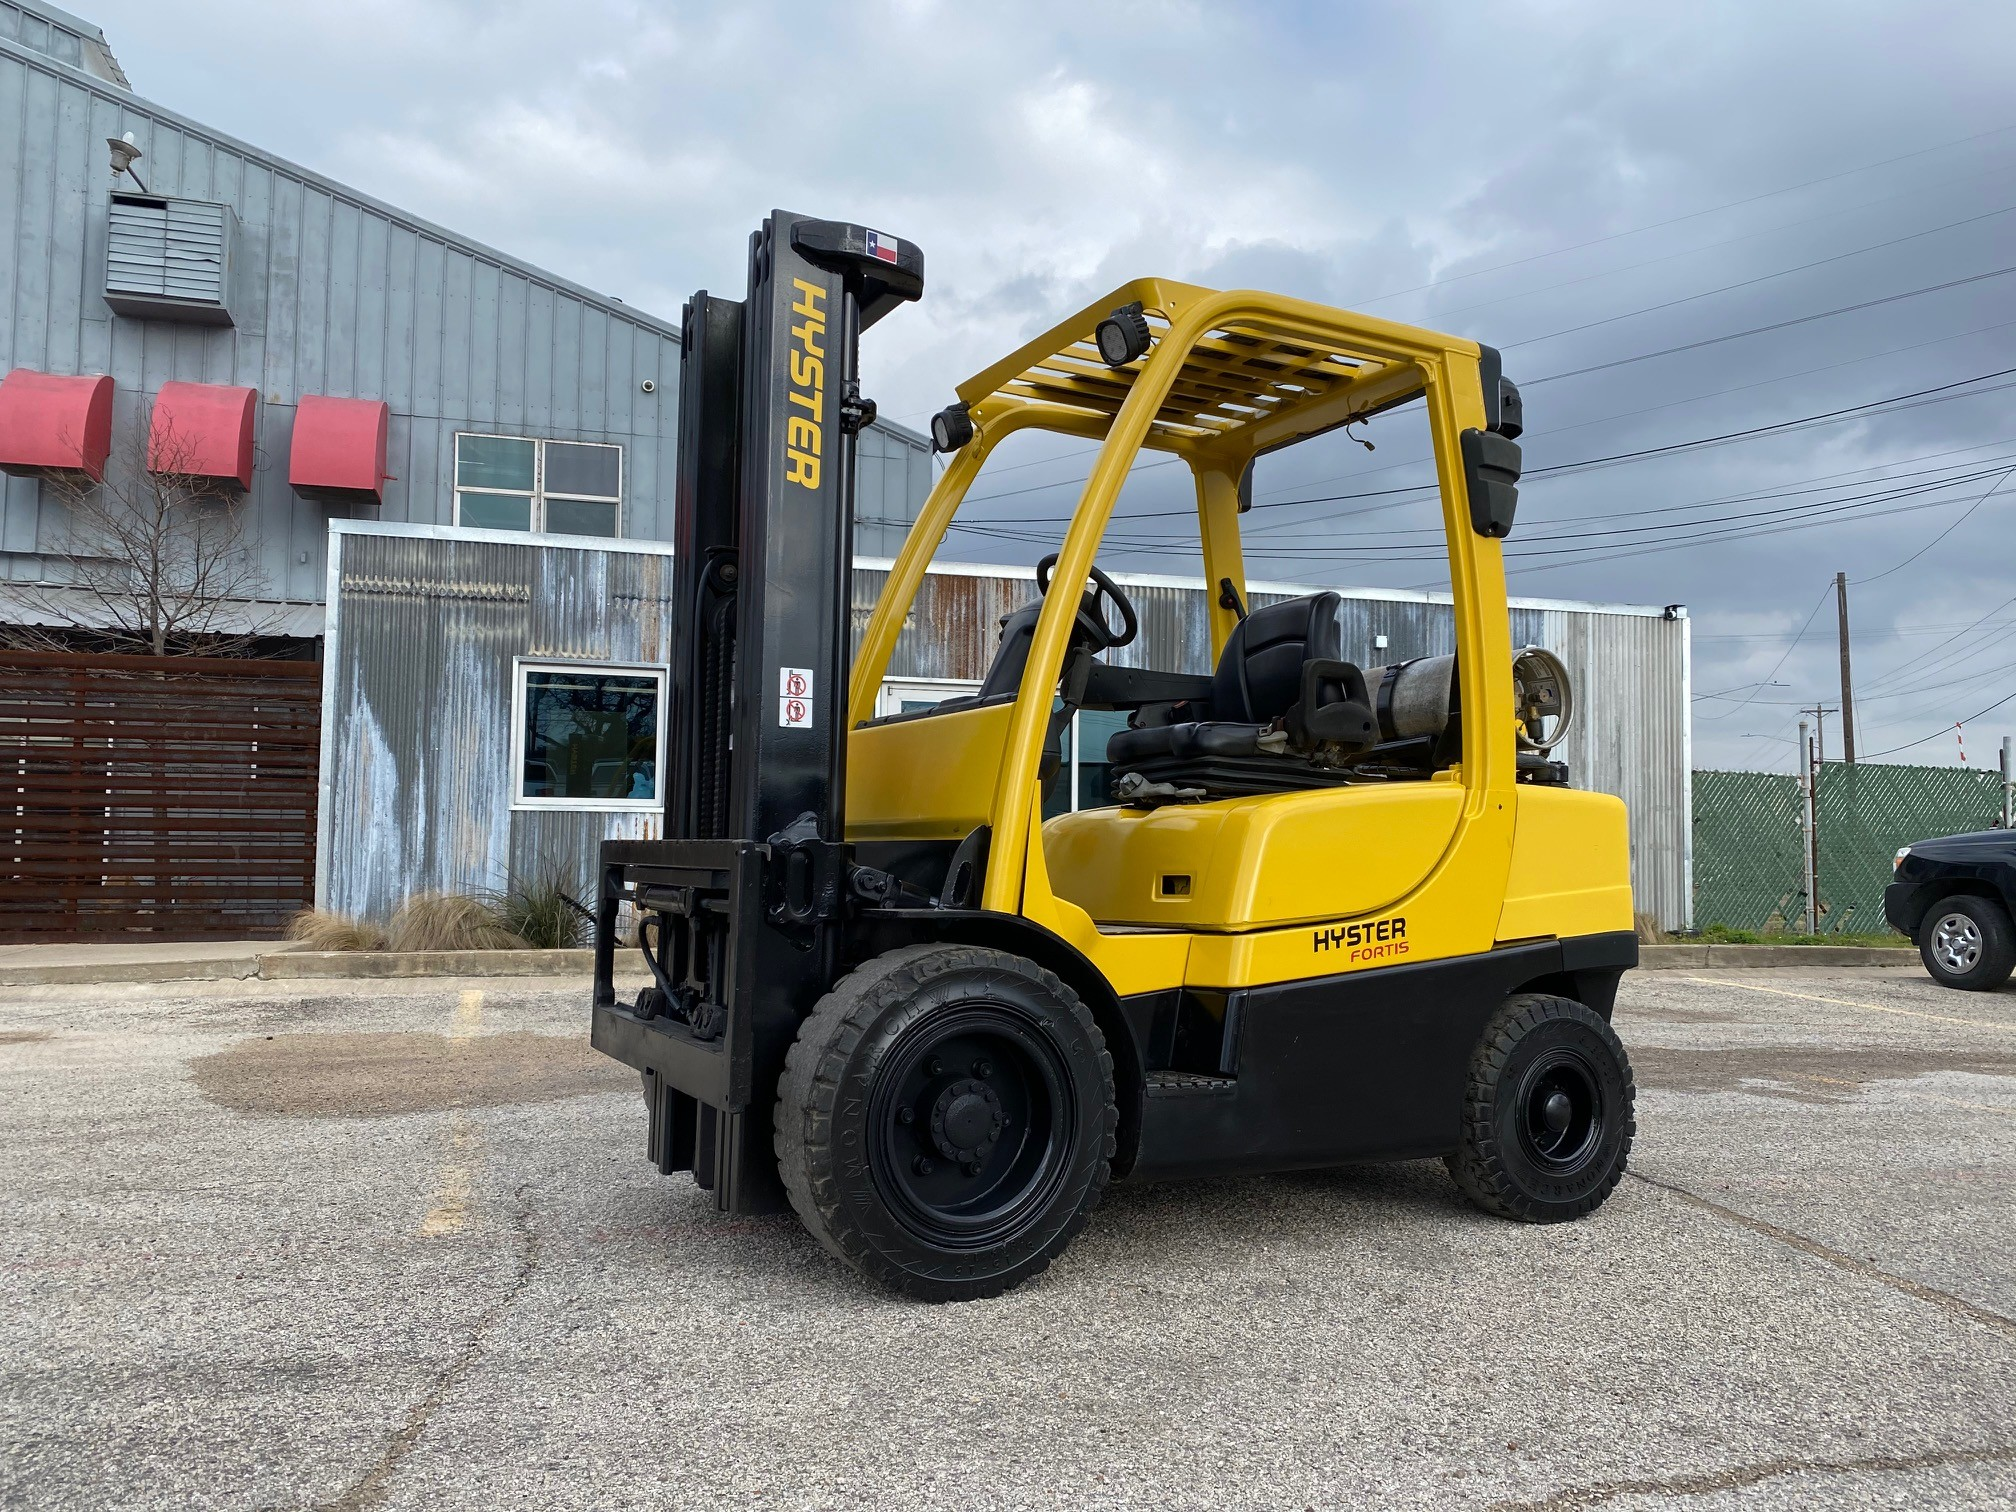 Used, 2011, Hyster, H60FT Fortis® Advance, Forklifts / Lift Trucks